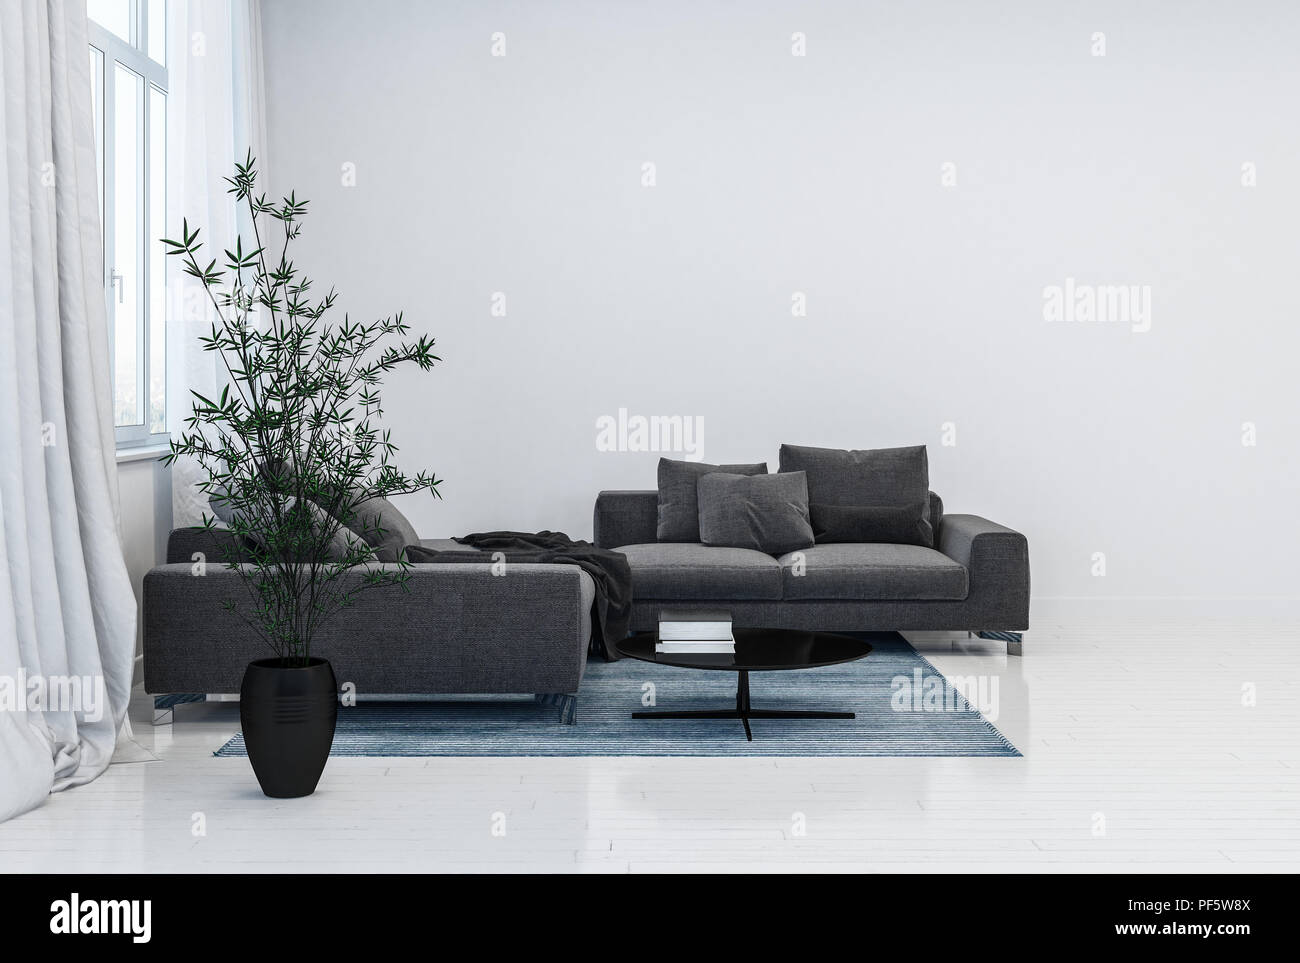 Black Couch With Cushions And Black Plant Pot On Top Of Rug Next To Window With Curtains In Glossy Contemporary White Room 3d Rendering Stock Photo Alamy